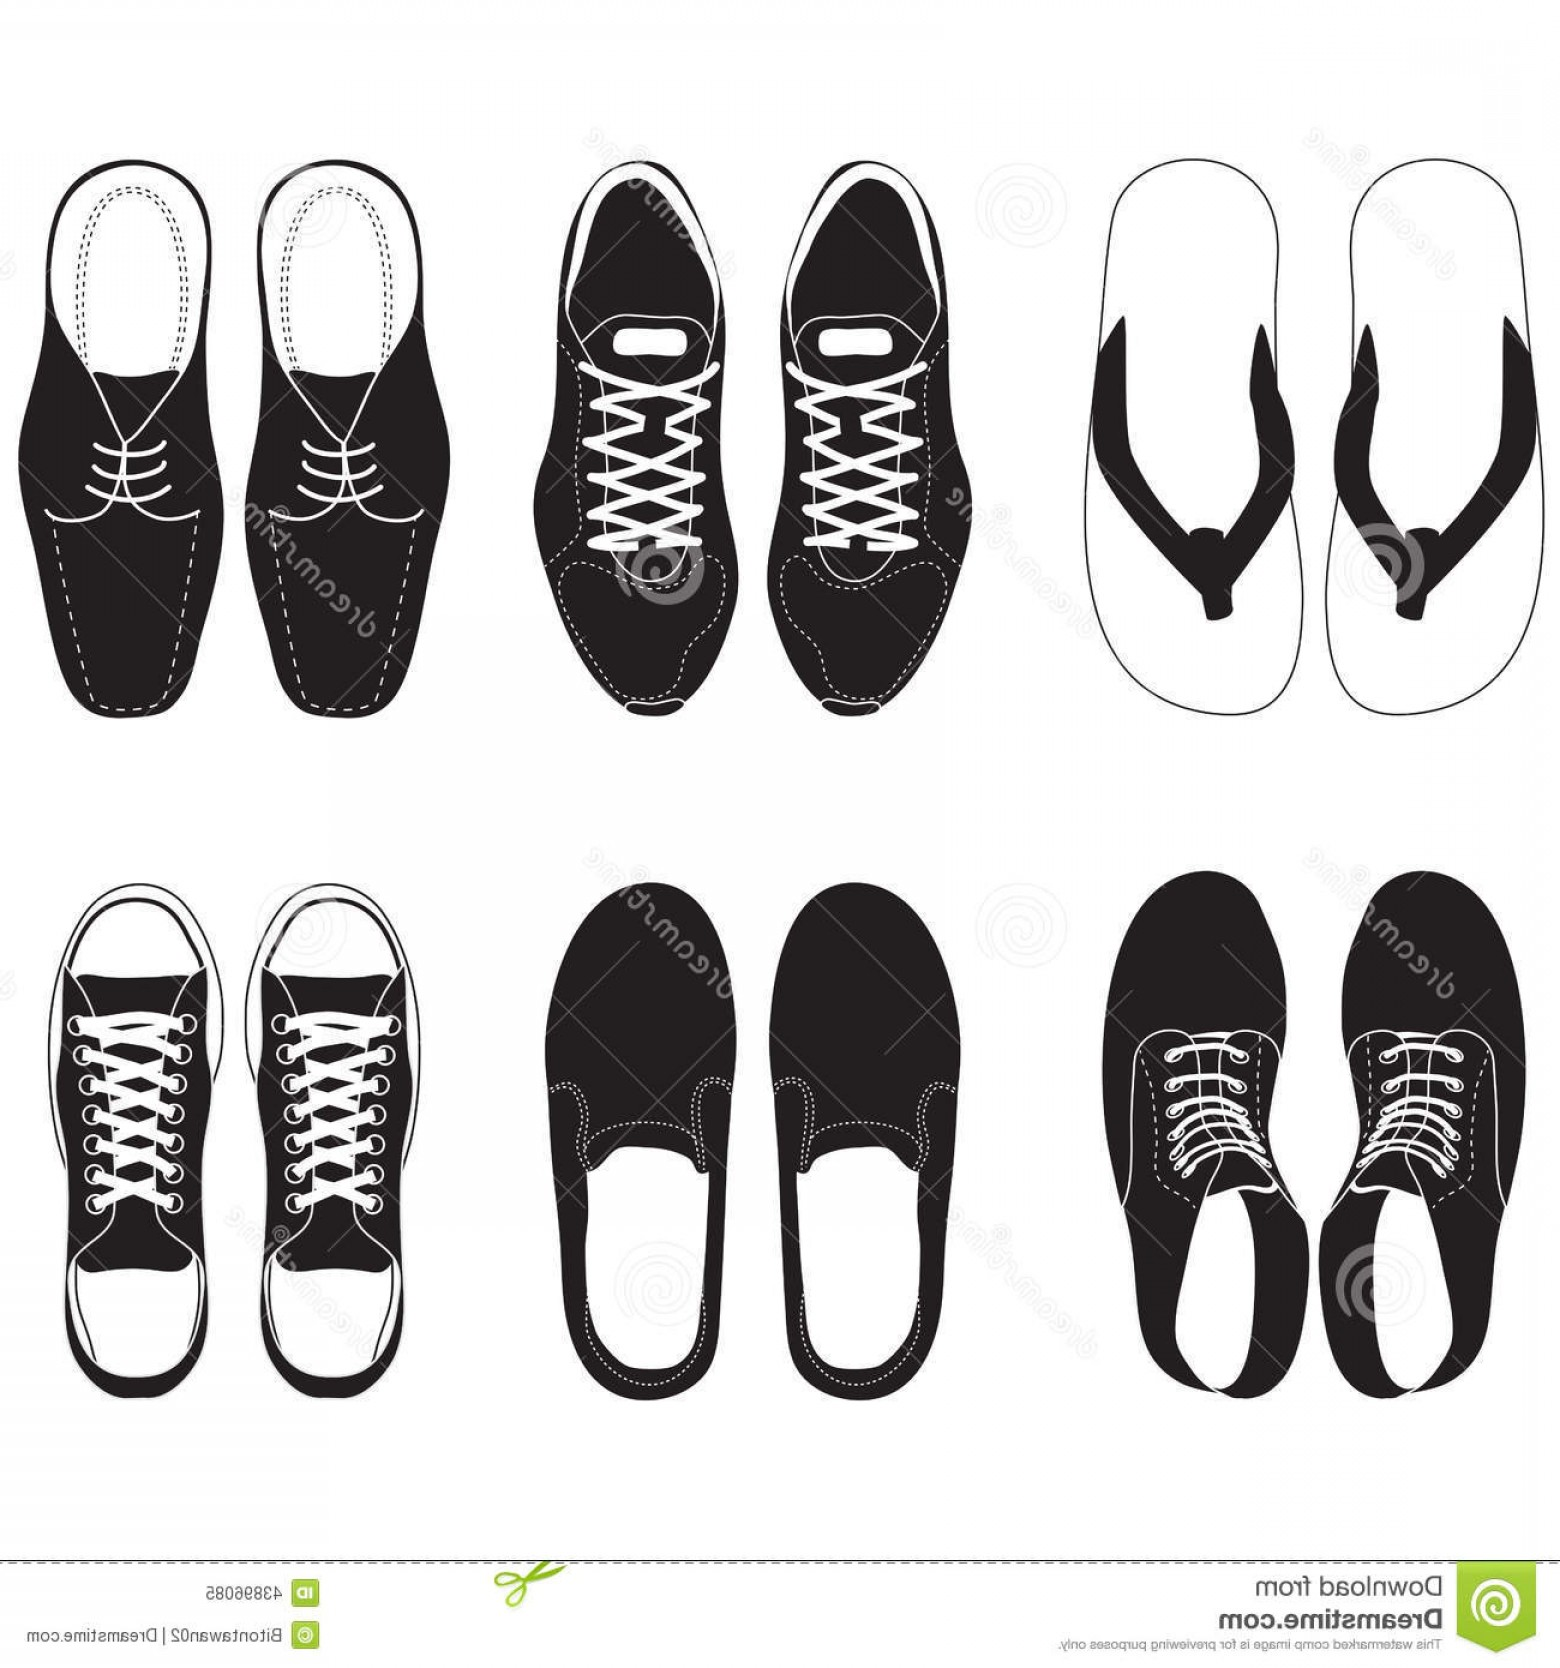 Sneaker Silhouette Vector: Stock Illustration Shoe Vector Set Black Top Image